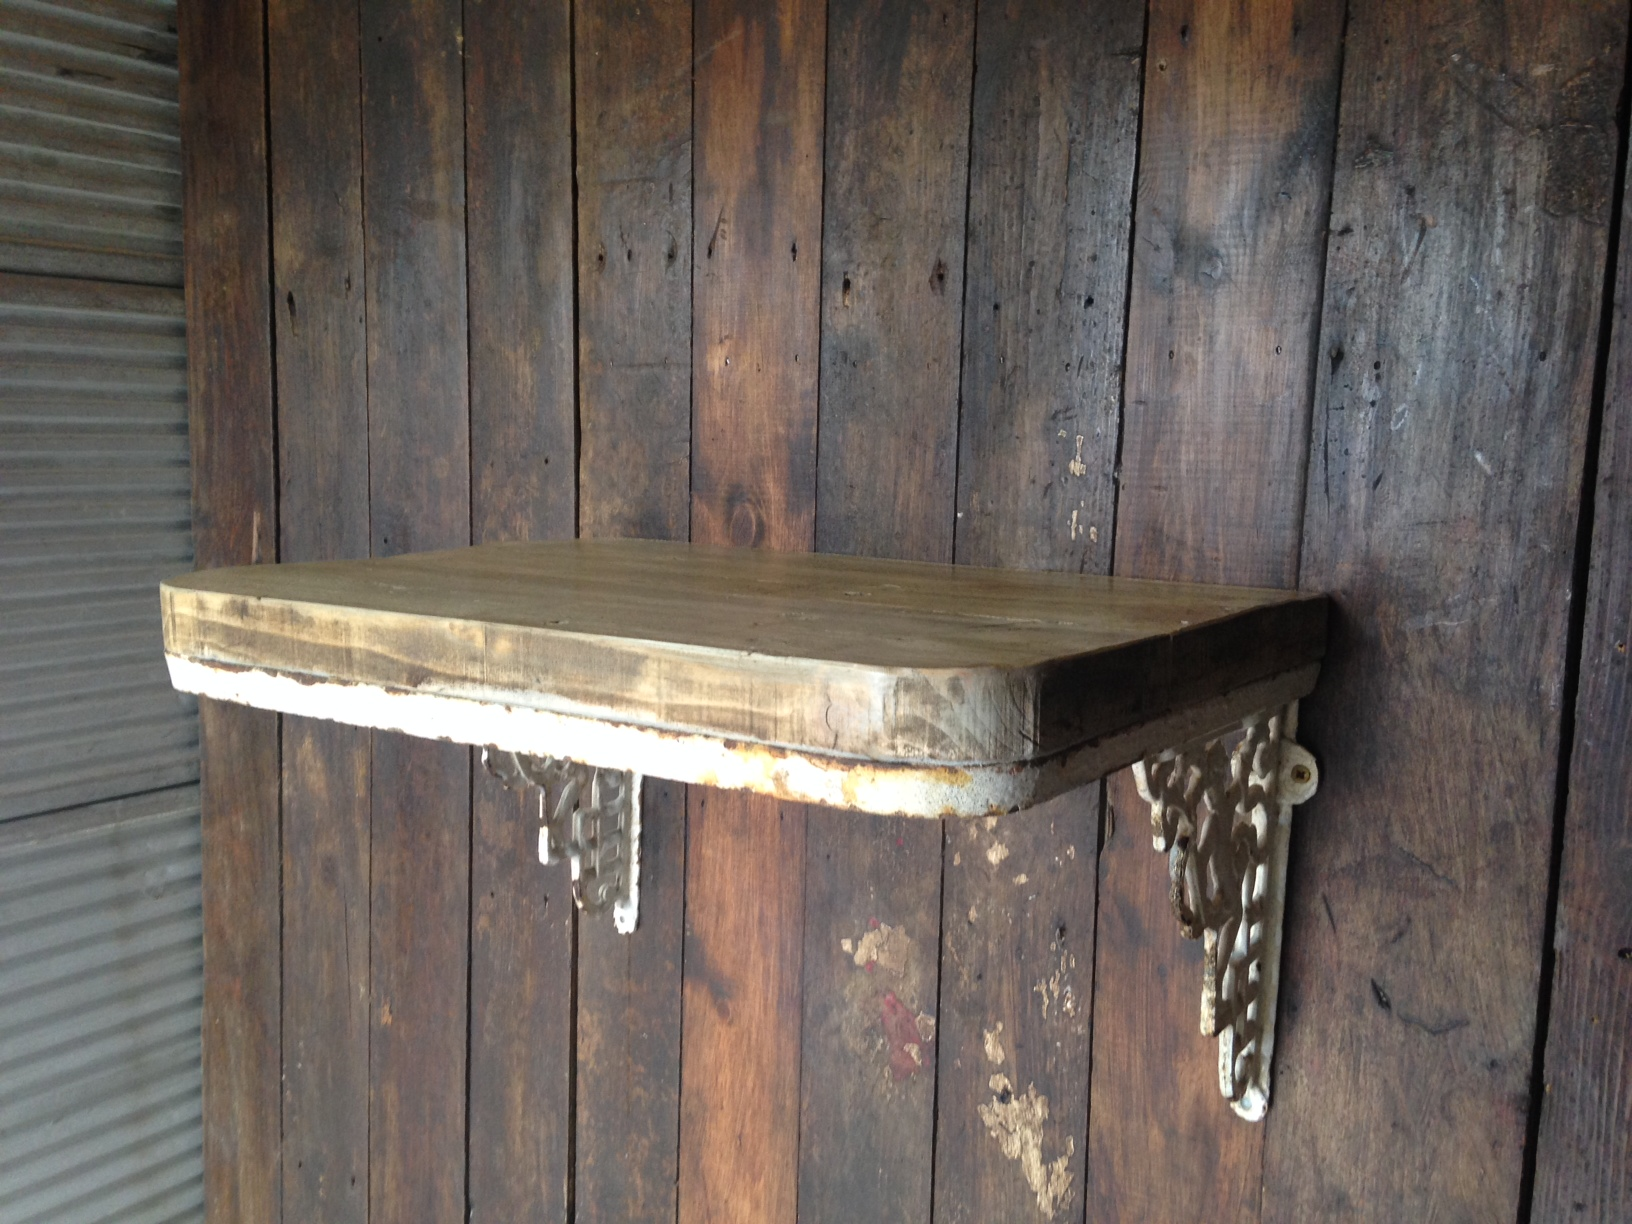 Wonderful image of  Decorative items / Wrought Iron Cherub Wall bracket with Wooden Shelf with #8B7740 color and 1632x1224 pixels